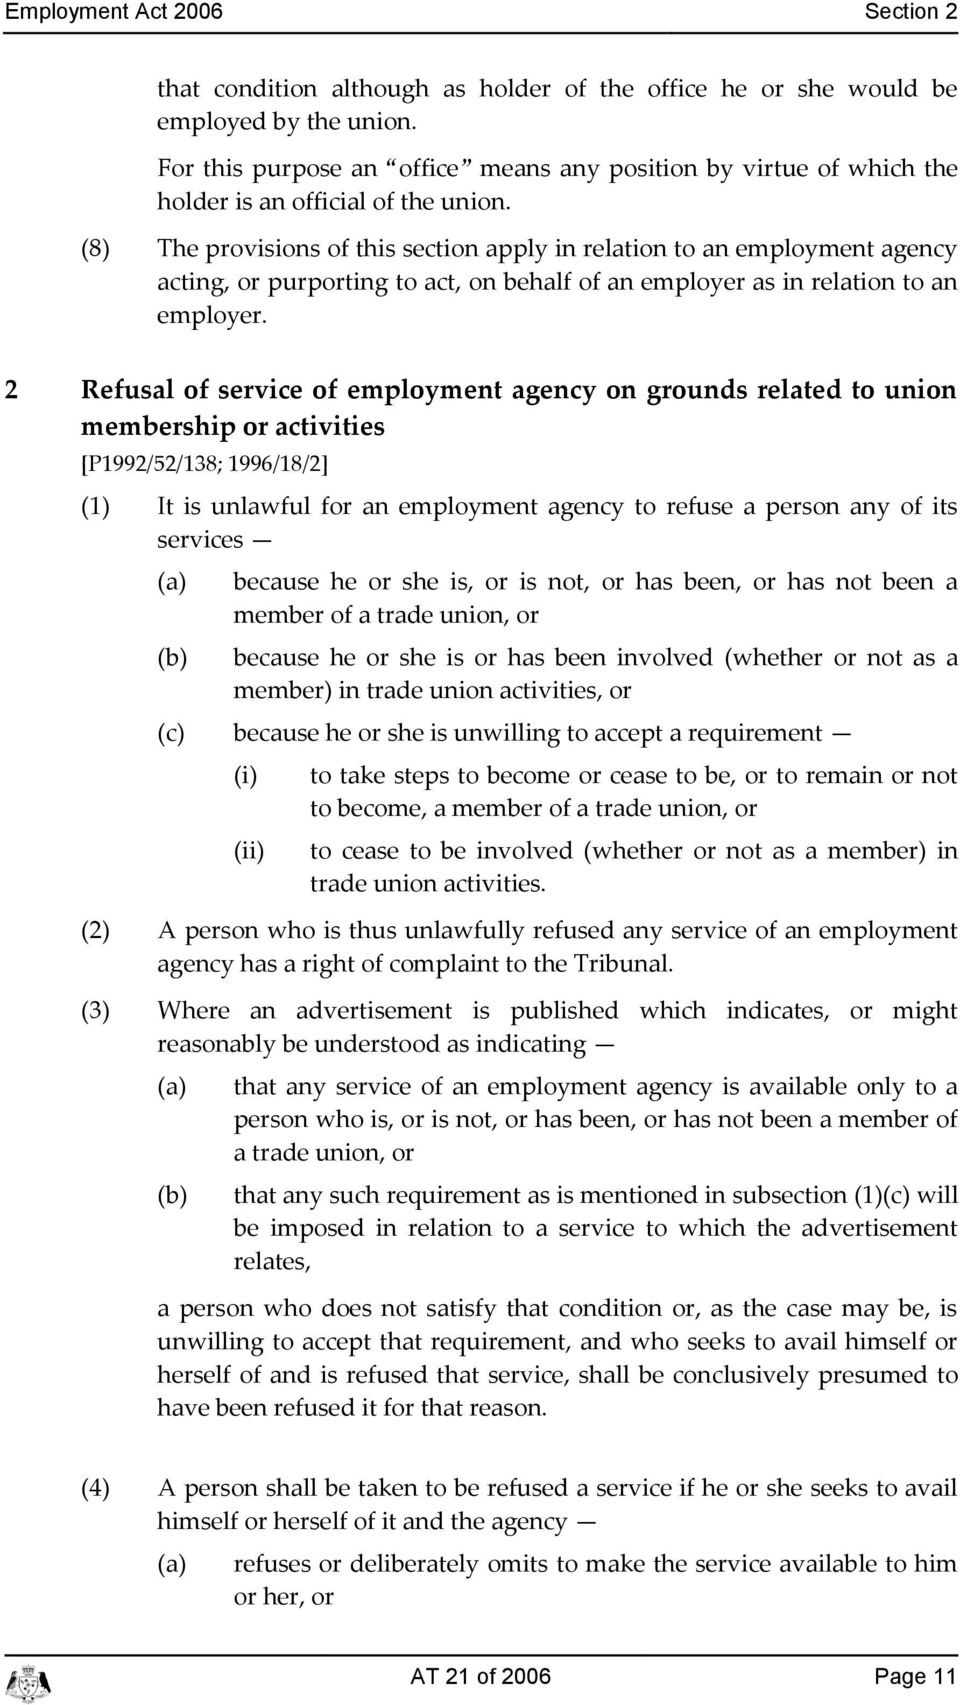 (8) The provisions of this setion apply in relation to an employment ageny ating, or purporting to at, on behalf of an employer as in relation to an employer.